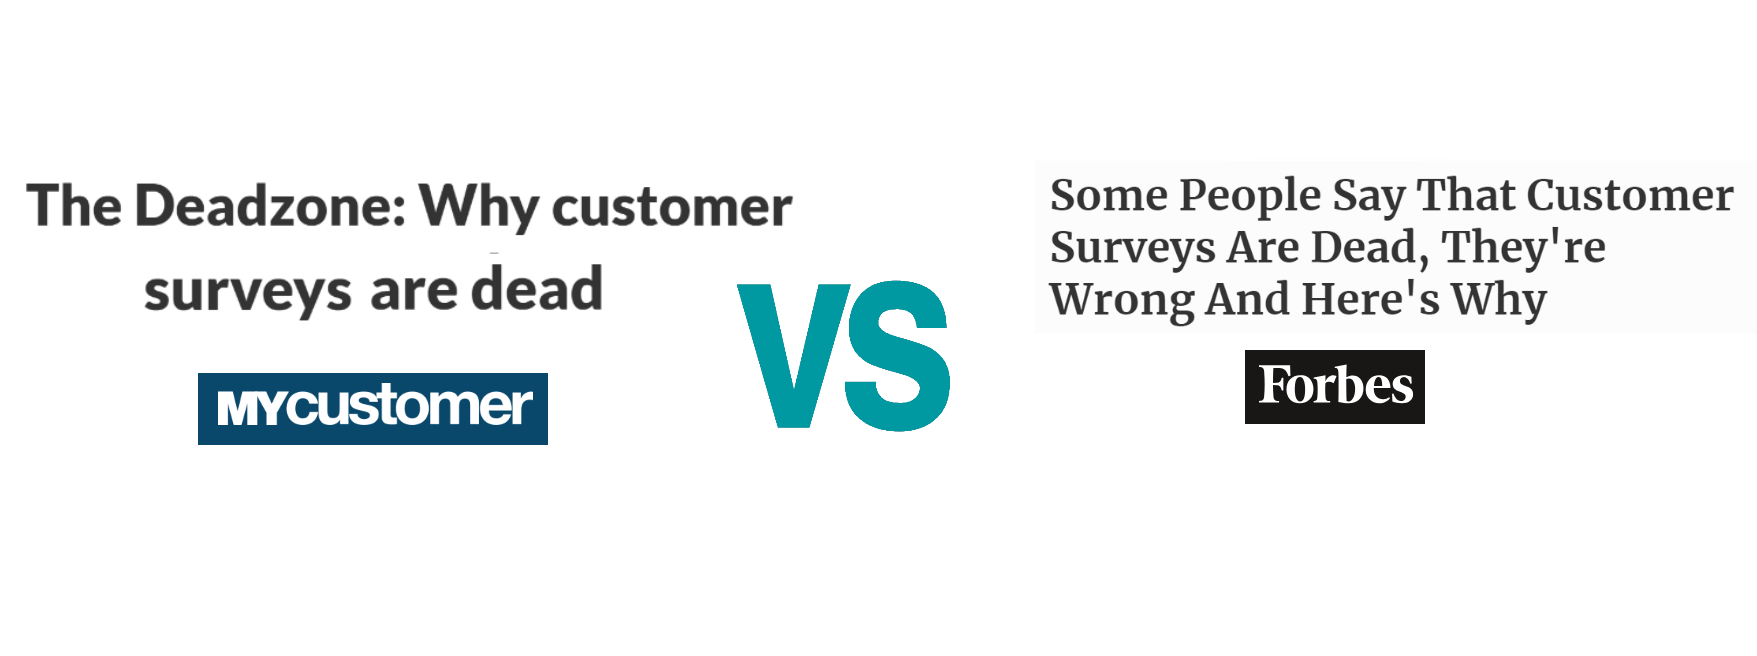 """"""" The Deadzone: Why customer surveys are dead """" (MyCustomer) vs. """" Some People Say That Customer Surveys Are Dead, They're Wrong And Here's Why """" (Forbes)"""